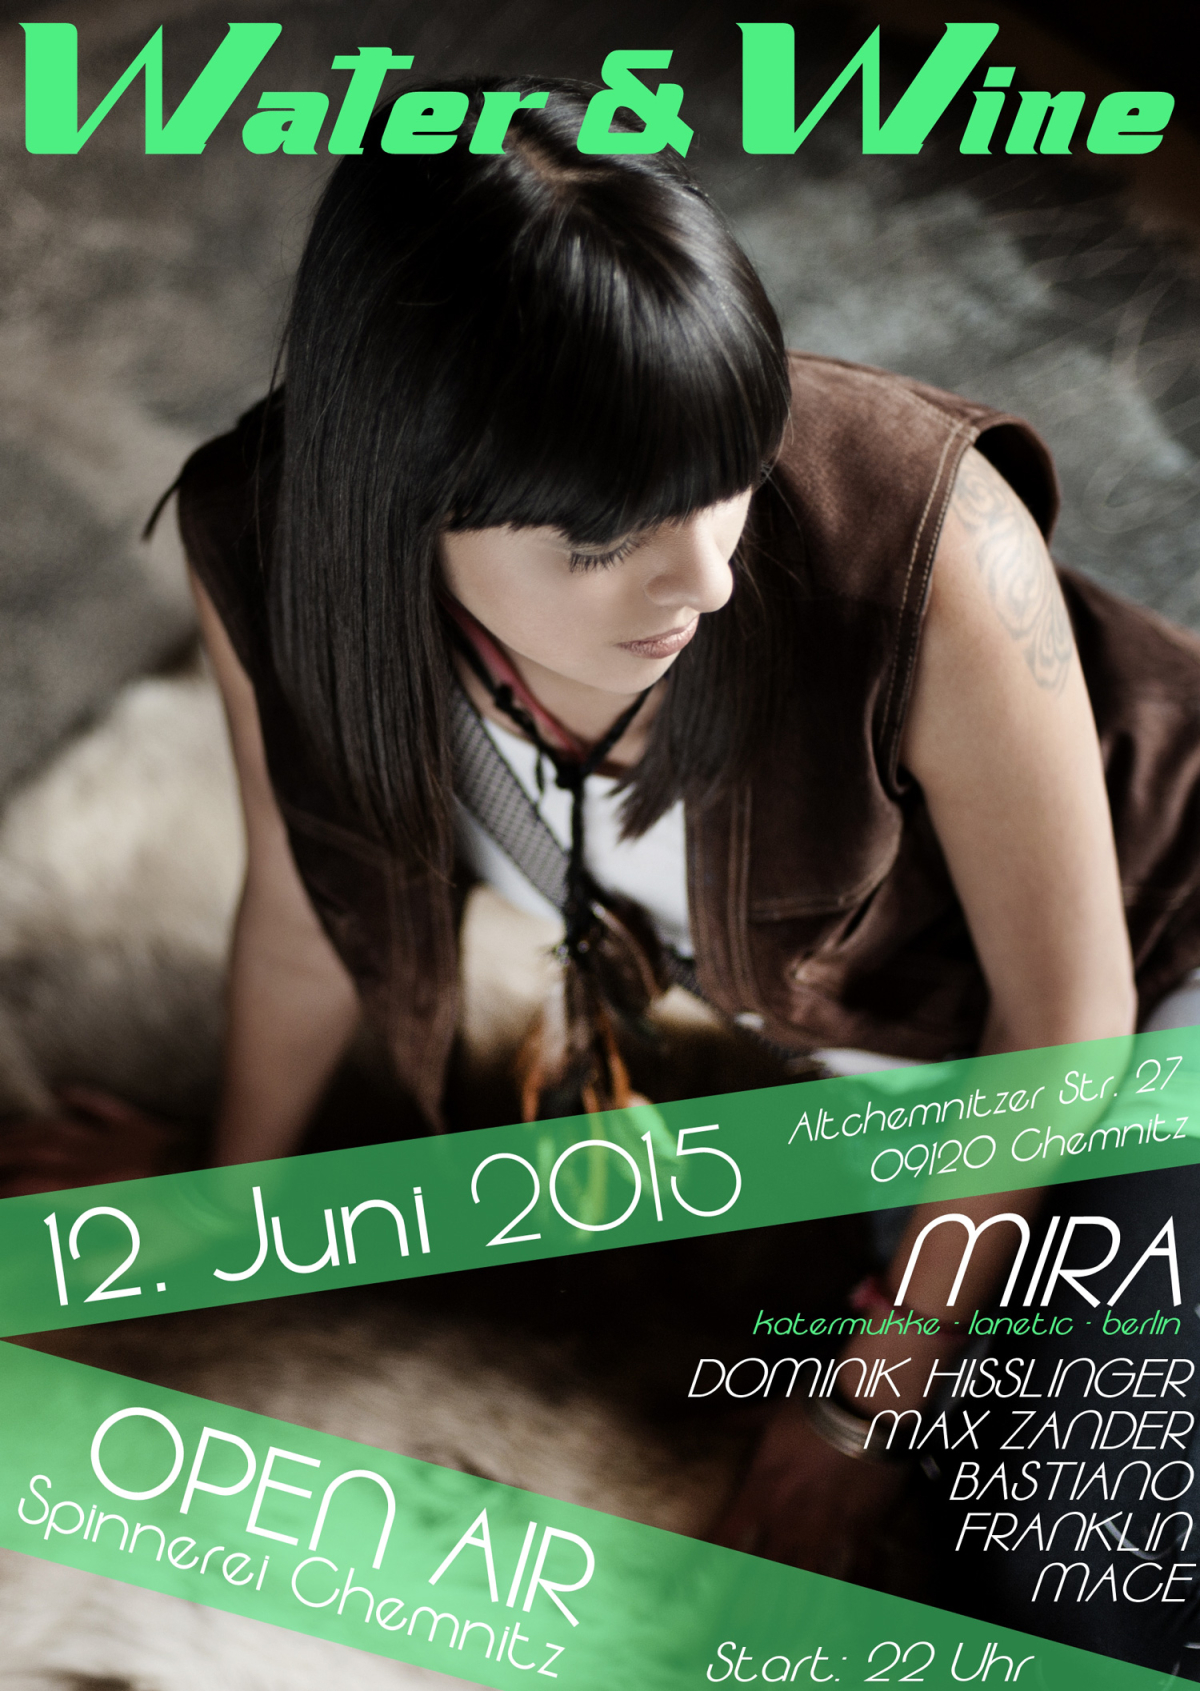 12.06.2015 – Water & Wine Open Air mit Mira – Spinnerei, Chemnitz